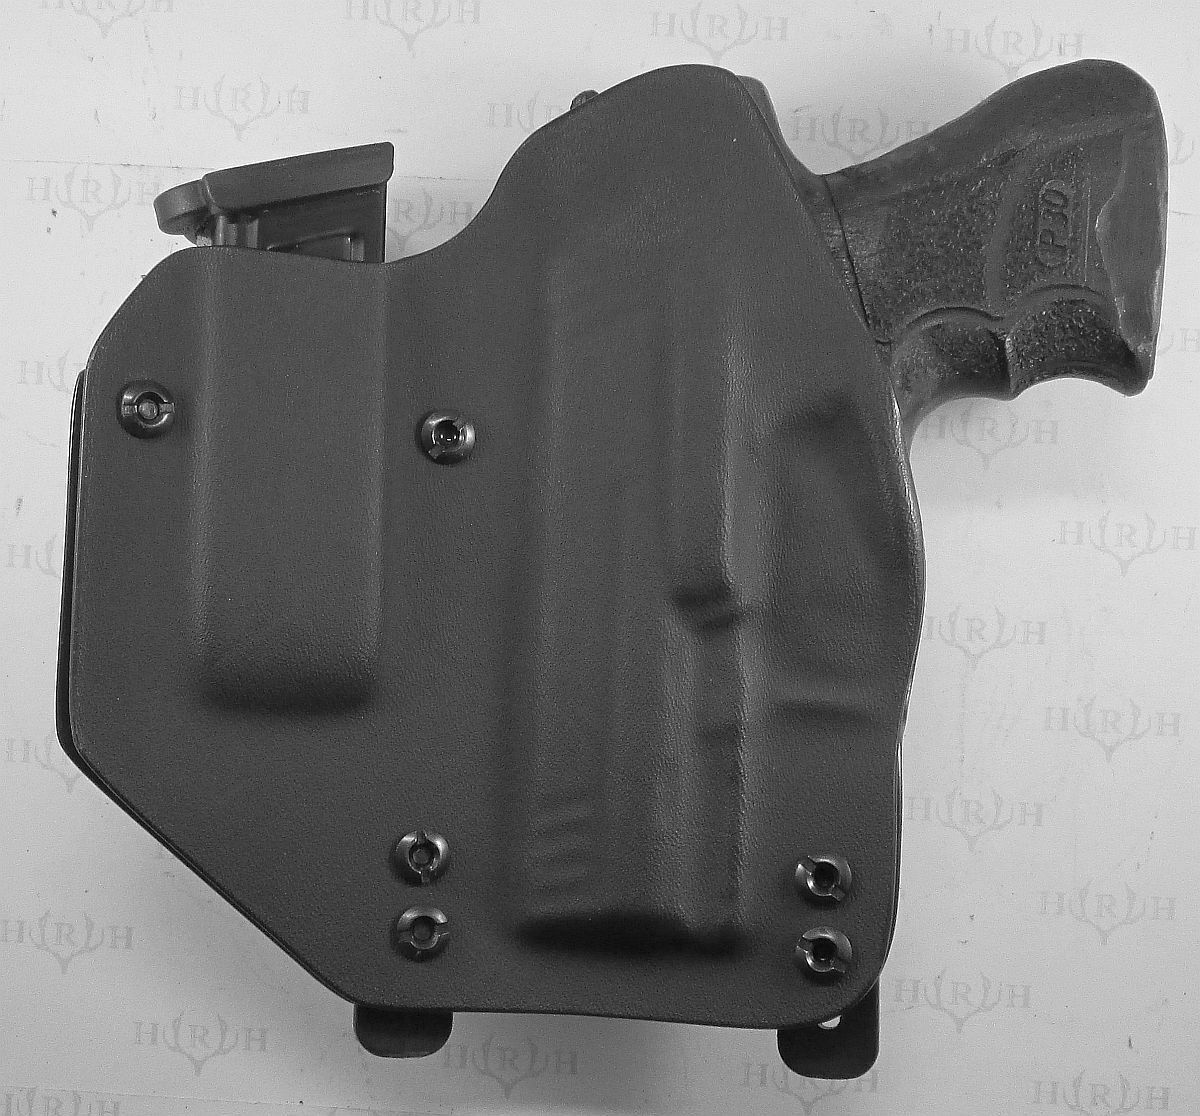 Hunt Ready Holsters: H&K P30 SK IWB IWB IWB Combo Gun Holster with extra Mag Carrier 8eeca2